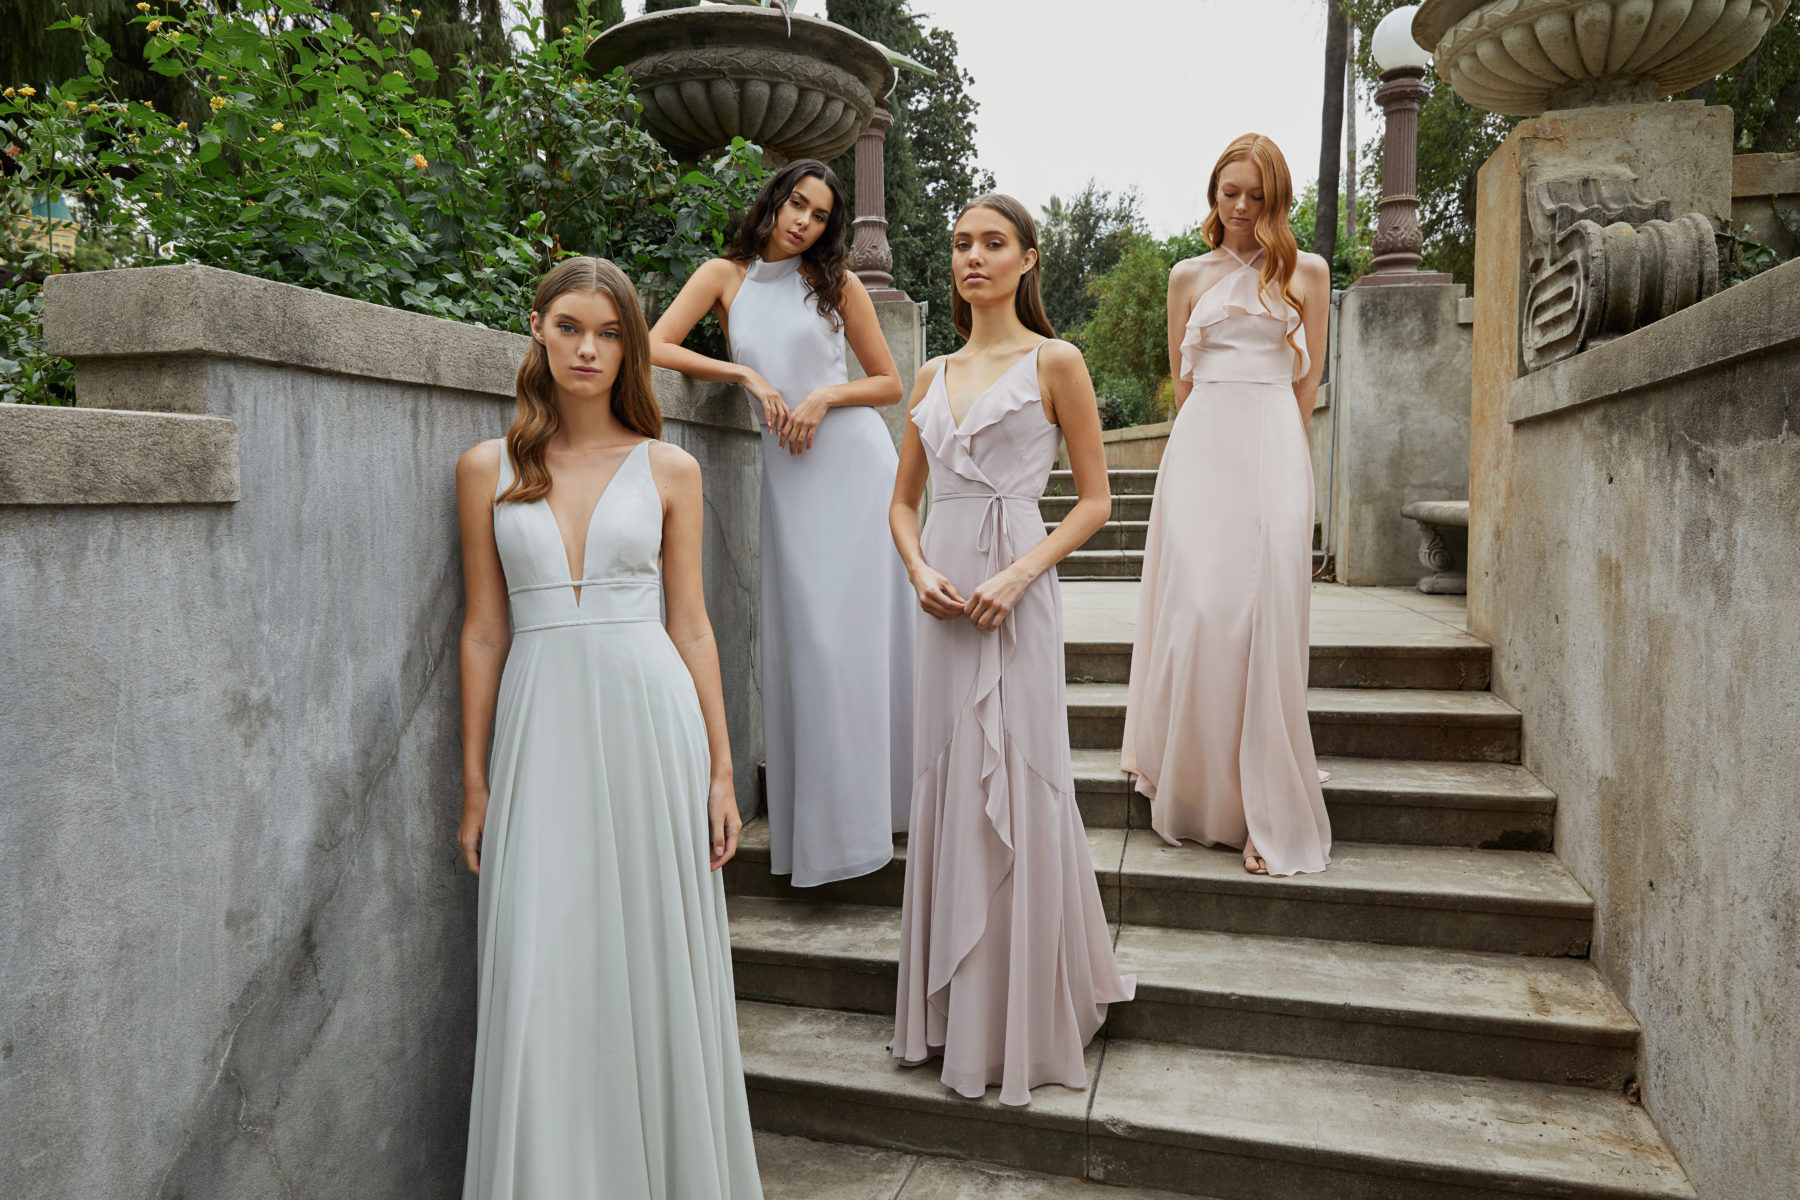 New Bridesmaid Dress Styles for 2020 at Bella Bridesmaids featured on Nashville Bride Guide